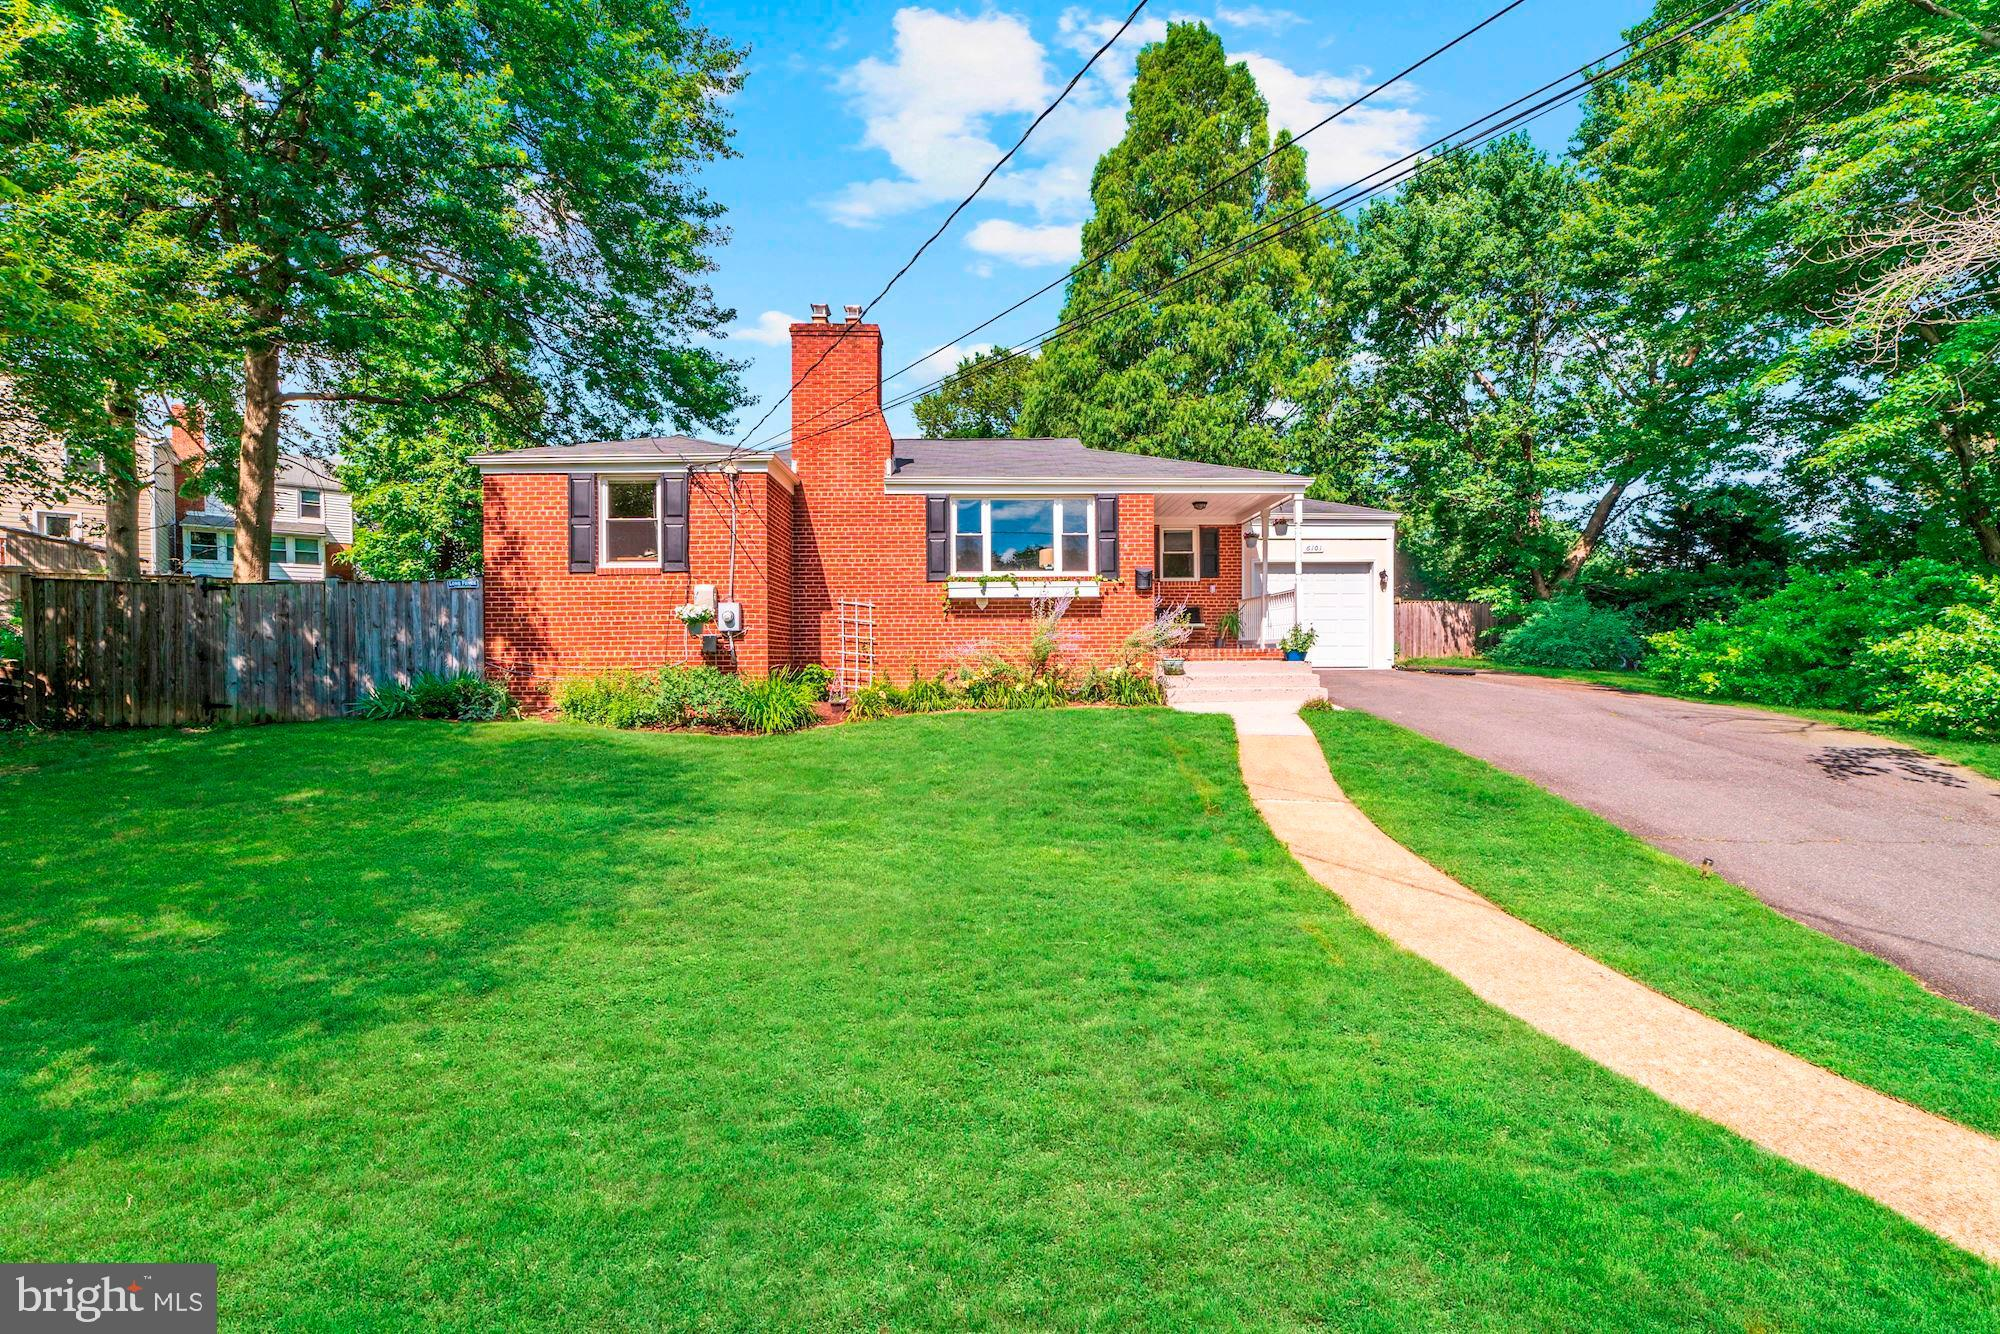 You'll love this Wilton Woods hidden gem in a quiet cul-de-sac! Under 1 mile walking distance to Huntington Metro, shops, and many conveniences. Quick and easy access to the beltway, Carlyle District, and Old Town Alexandria. Spacious throughout, with 2,300 finished square feet, 5 bedrooms (2 lower level rooms are considered dens), and 3 full bathrooms. Main level includes lovely hard wood floors, inviting living room with cozy wood burning fireplace, delightful dining room, and bright kitchen with granite countertops and stainless steel appliances with gas stove. Fully finished lower level has ample sized family room/recreation room with custom tile floor, perfect nanny or in law suite with separate entrance. Newer windows and roof. Rare attached garage in this neighborhood with extra driveway parking. Expansive, peaceful, and fully fenced back yard with patio, barzebo, storage shed, flower and vegetable beds. Edison HS pyramid. Close to everything! Transferable home warranty.